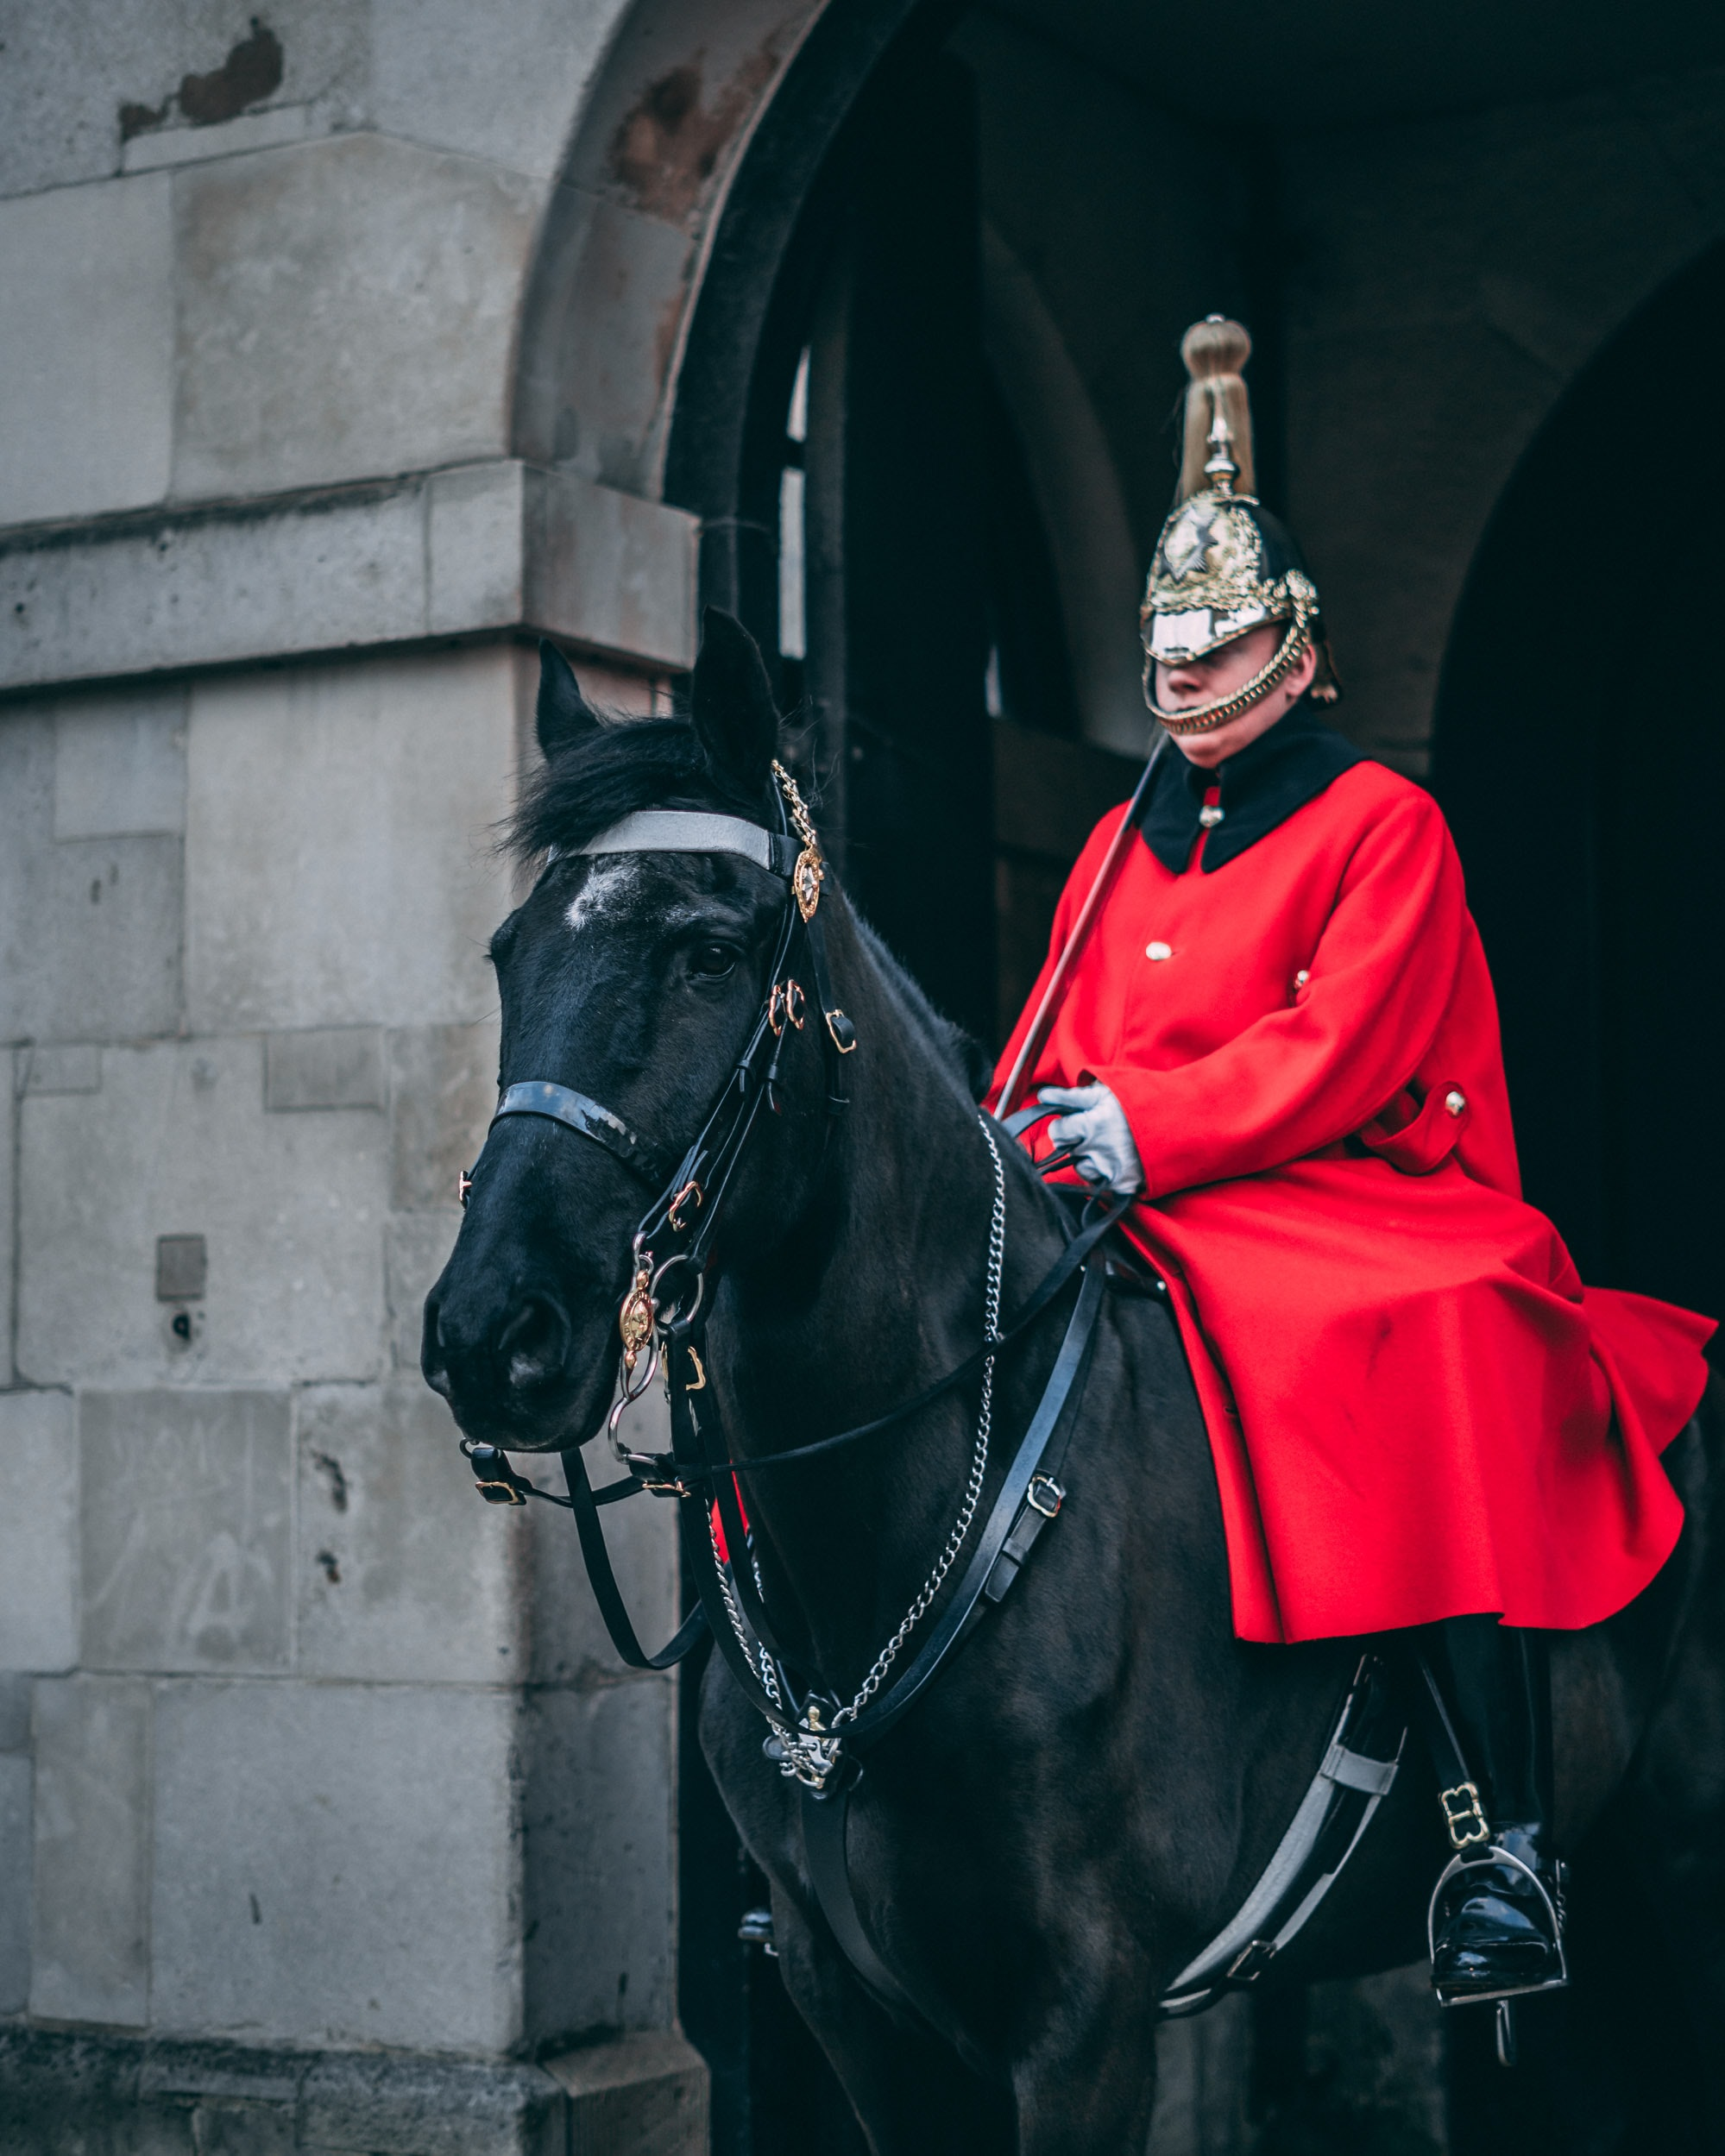 man wearing red coat riding on black horse